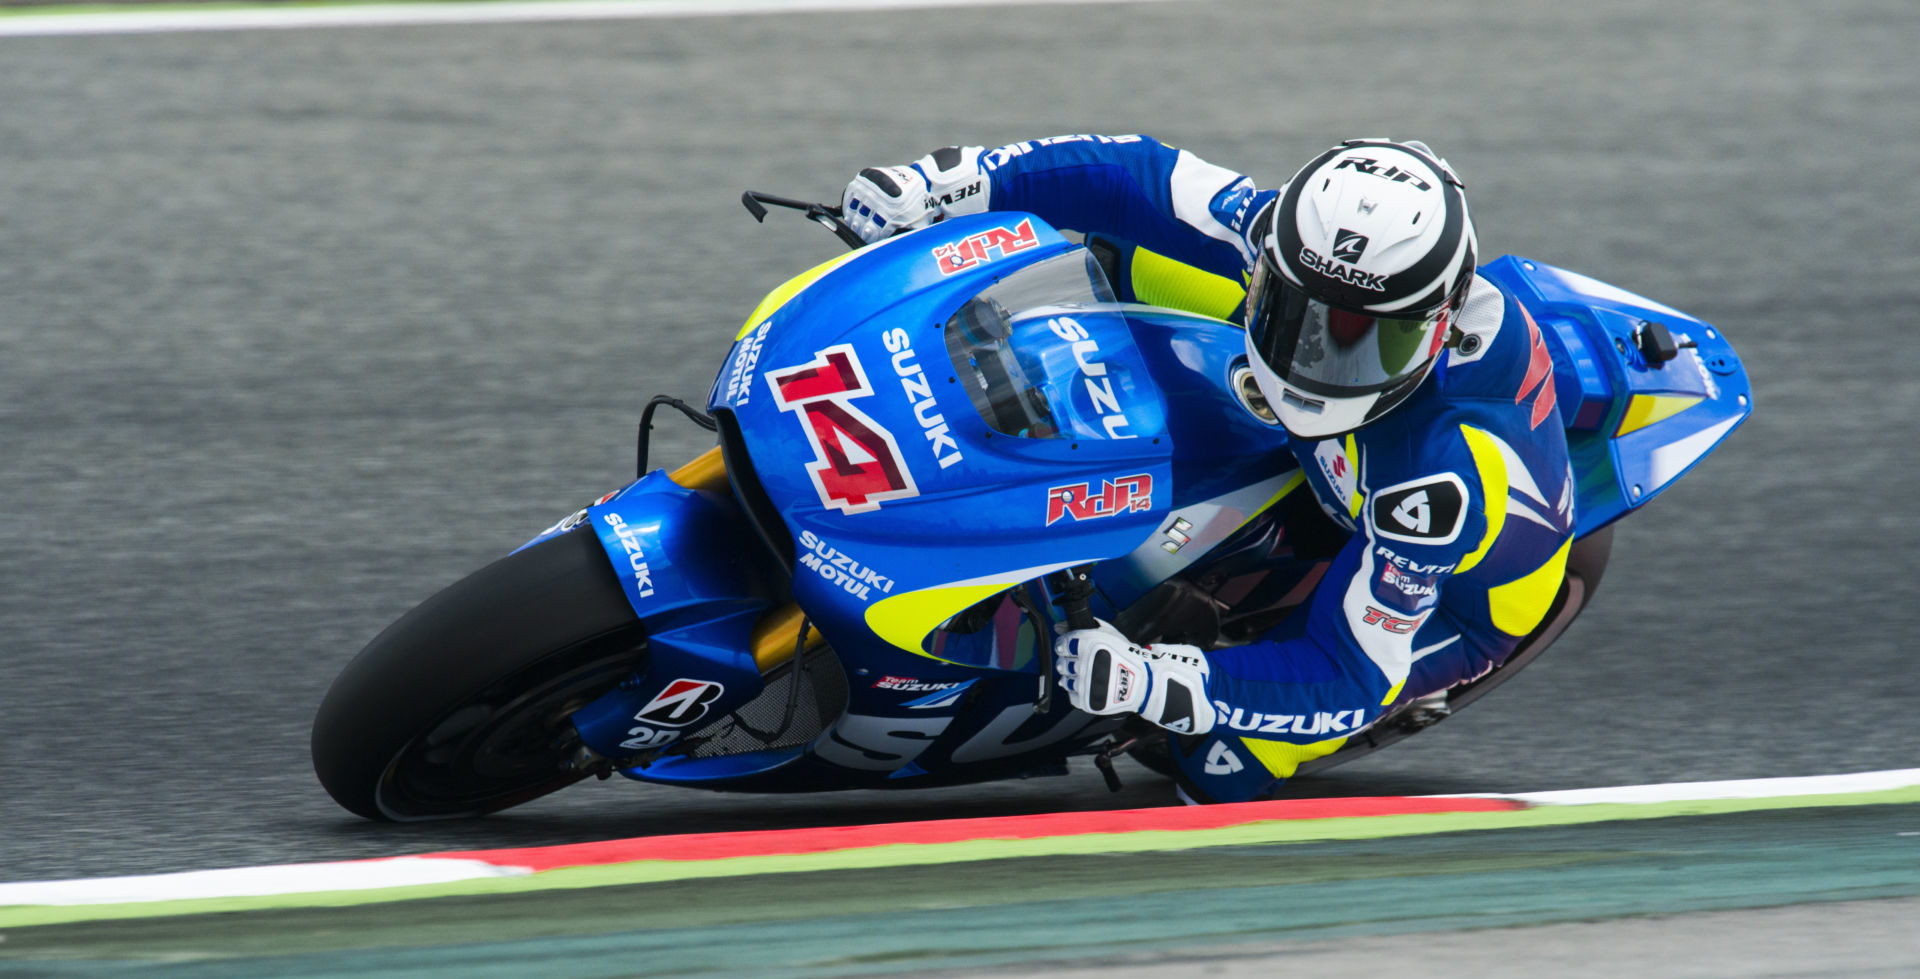 Randy de Puniet (14) in action on the Suzuki GSX-RR MotoGP prototype racebike. Photo courtesy of Team Suzuki Press Office.